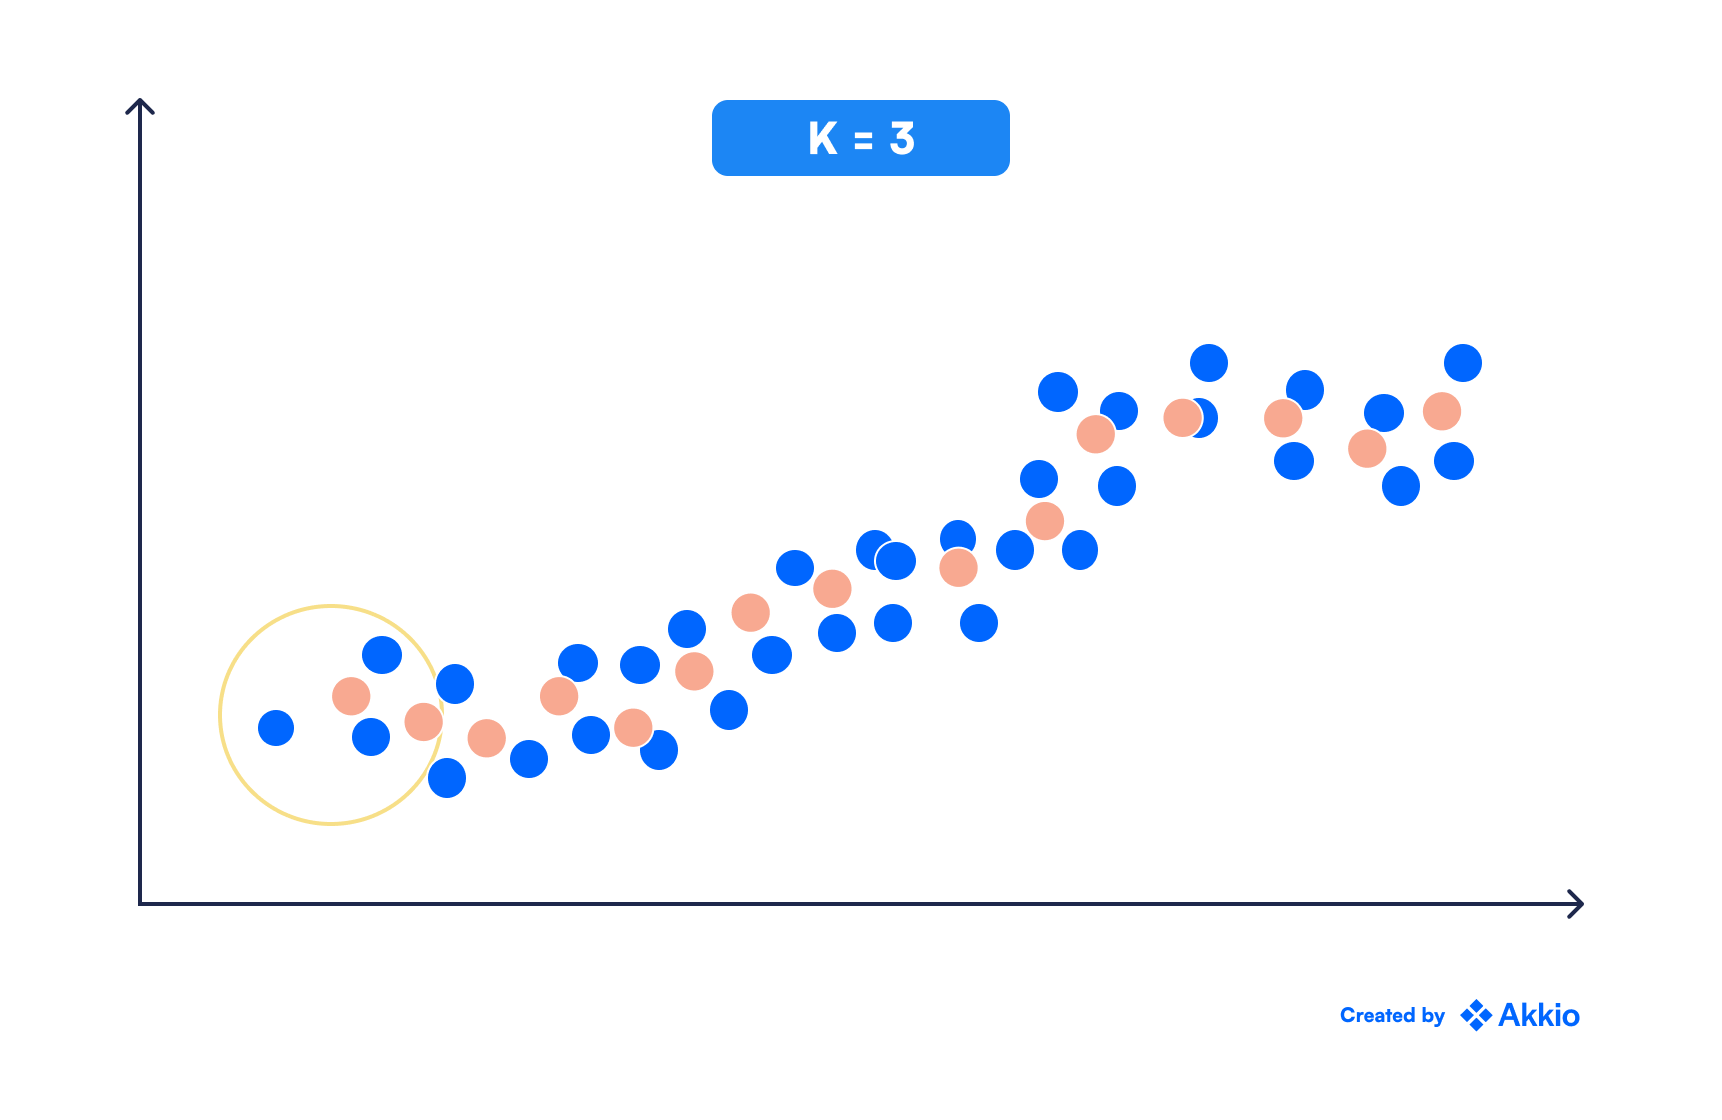 A scatter plot, with data points organized in a linear upward trending way. The k nearest neighborhood concept is represented with a circle enclosing 5 points at the left side of the plot, for k=3.